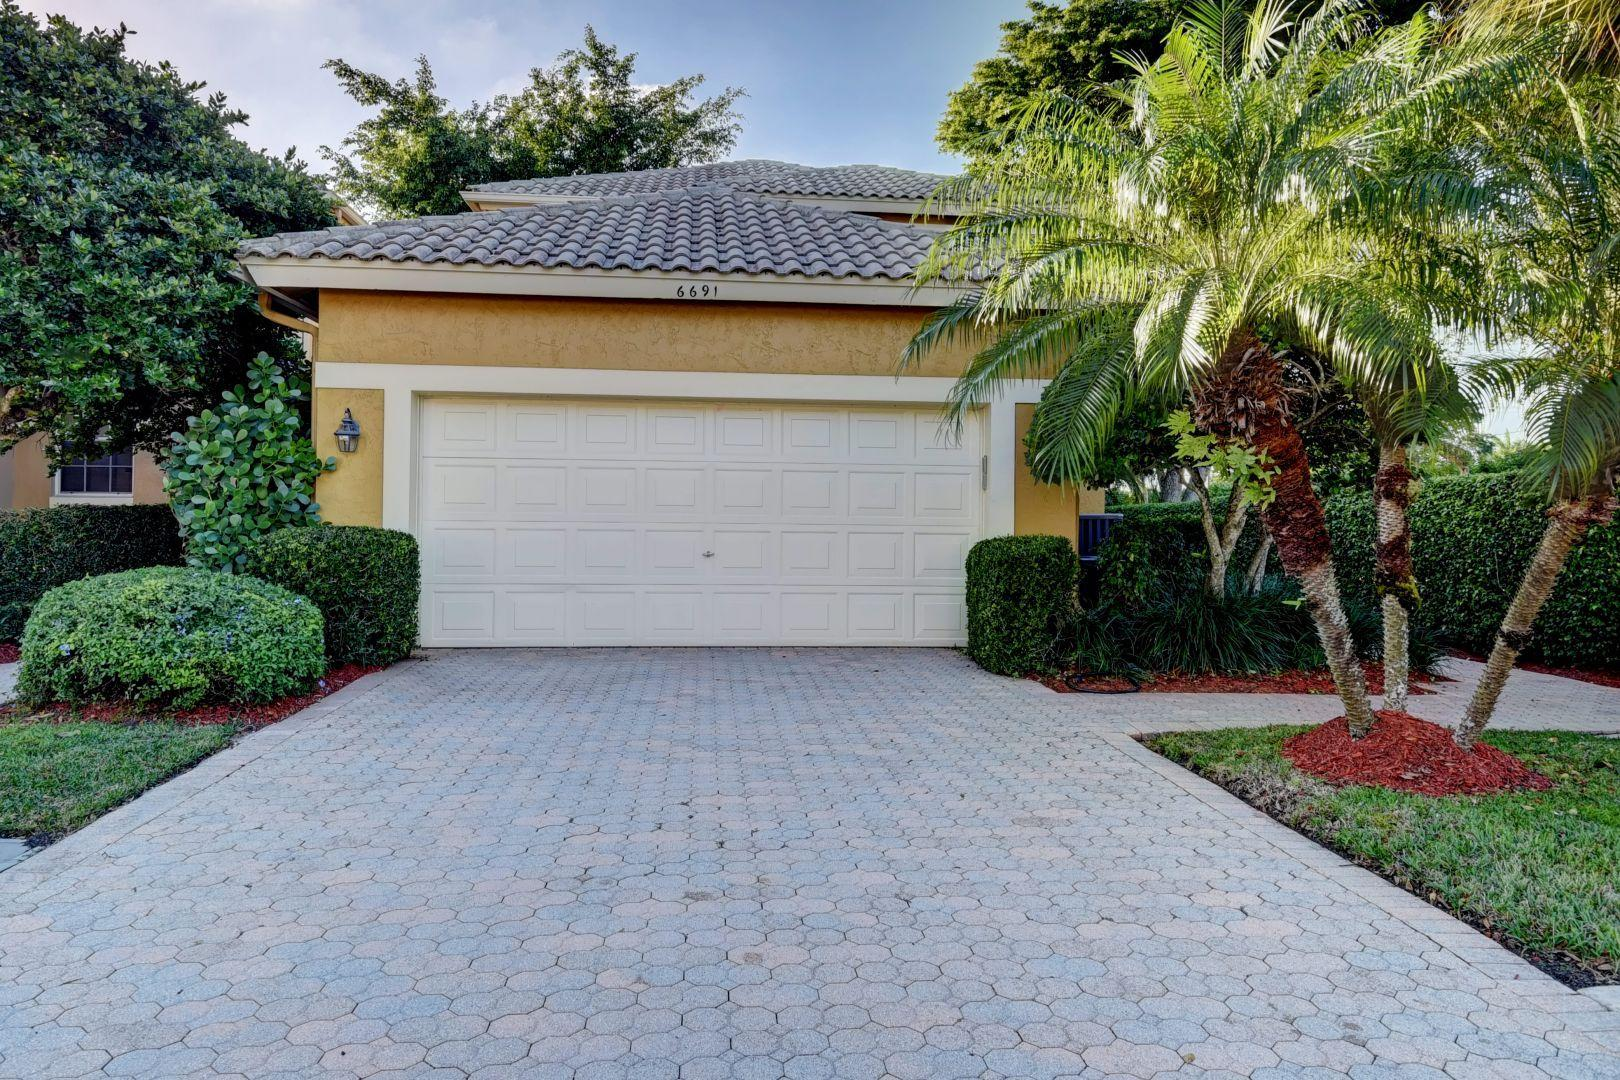 Details for 6691 25th Avenue Nw, Boca Raton, FL 33496